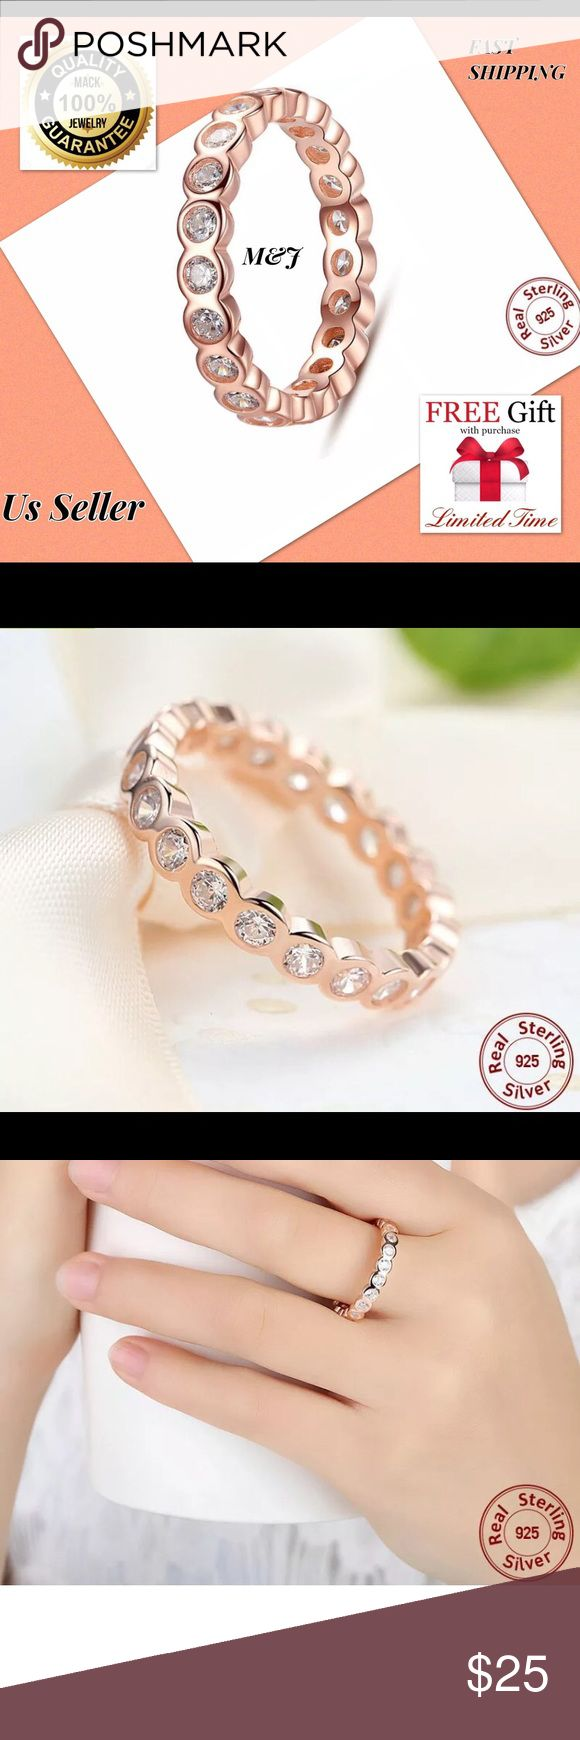 Rose gold925 sterling fashion love band  ring Feature 100% Brand New Material: 925 Silver AAA Zircon Crystal  Size: 7 Wearing Occasion: Wedding/ Engagement/ Anniversary/ Propose/ Party/ Gift Gift for: Girl friend/ Wife/ Mother/ Friends/Sister  We are the new seller but best seller. Now we have a limited time big promotion.  You can use or give gift your mom, dad, friend, sister... When you buy this item Nano technolog Microfiber claening Cloth $19.99 value is free for you! Jewelry Rings